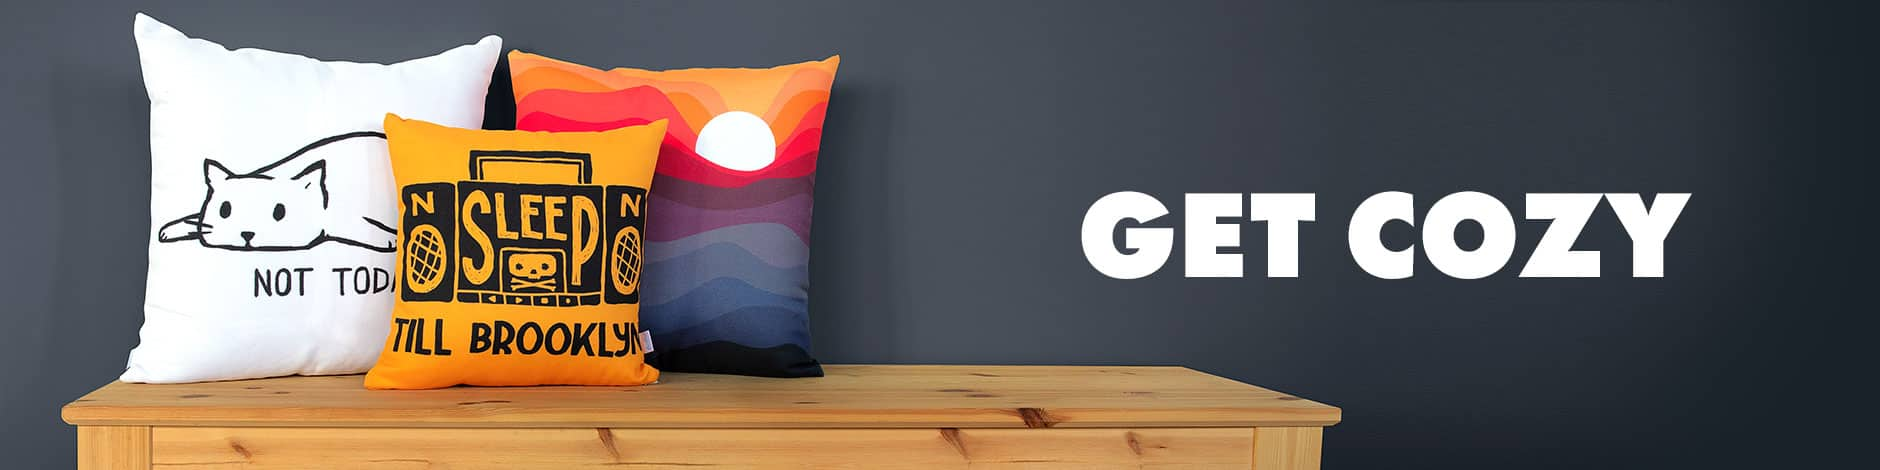 Shop Home Decor in the Threadless Marketplace